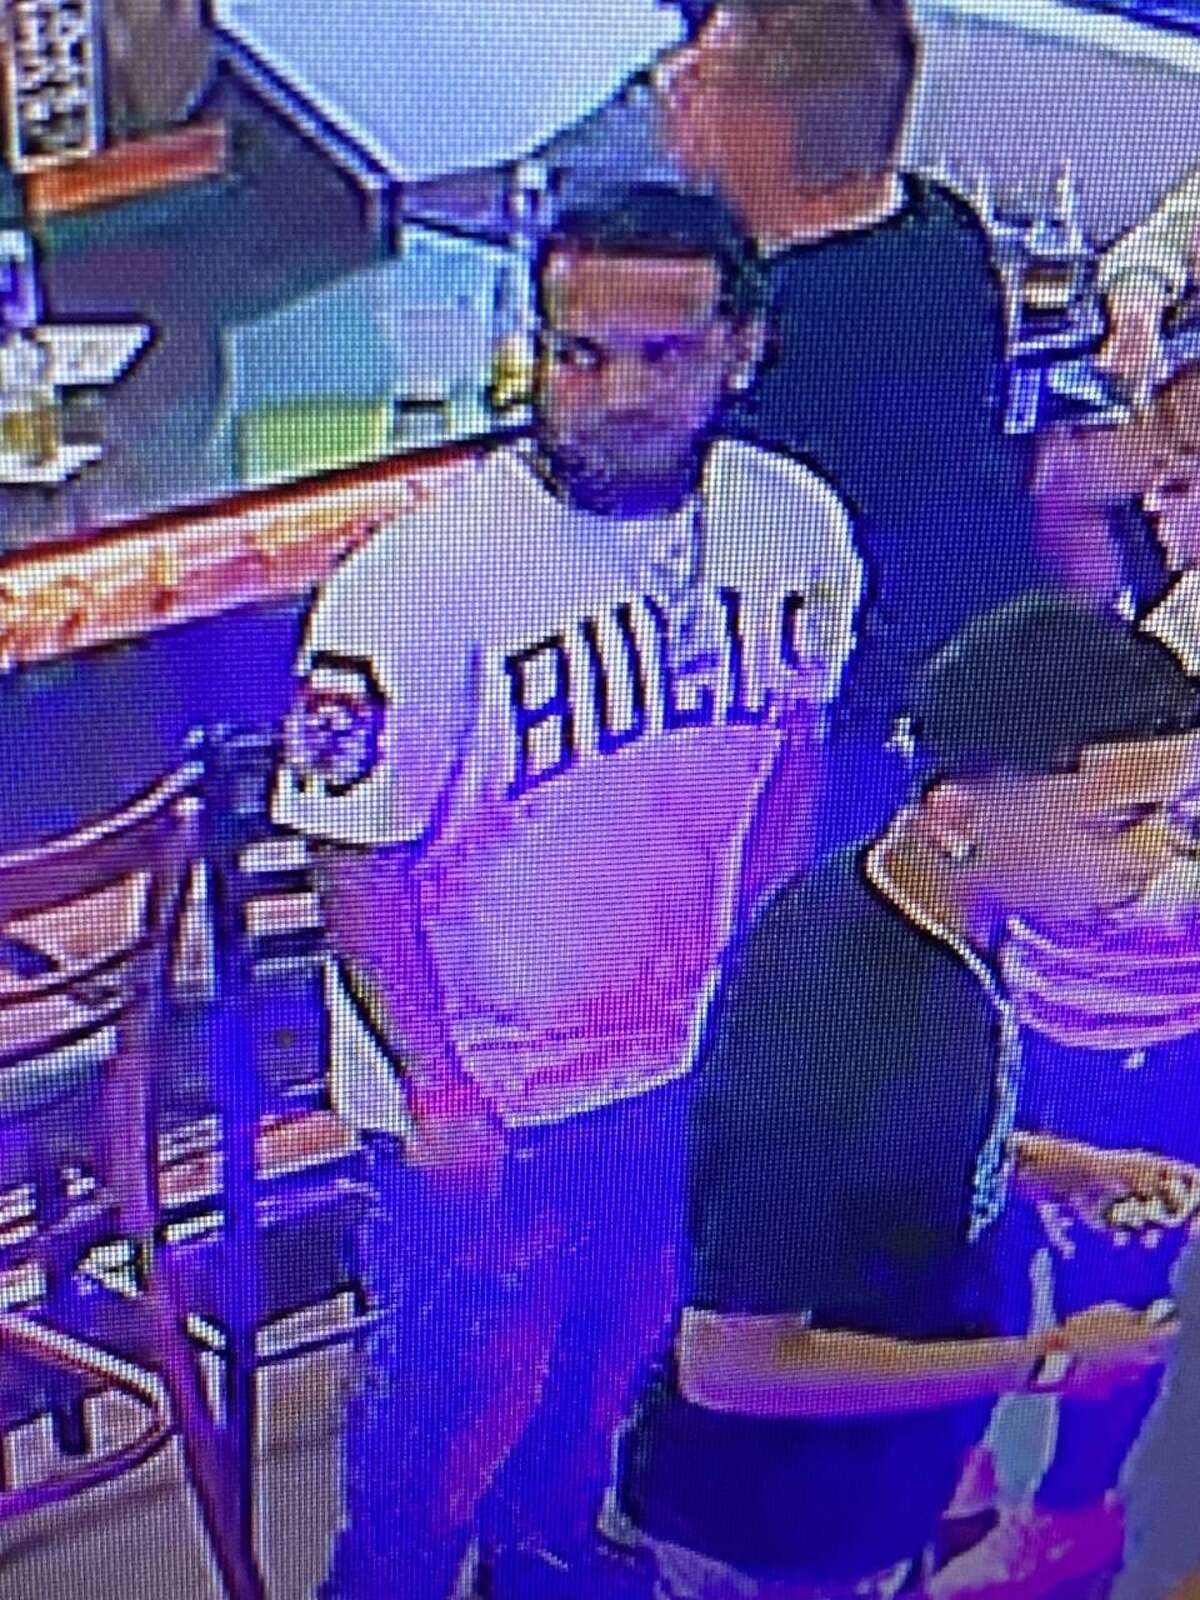 East Haven Police are asking for the public's help in identifying shooters from an incident on Oct. 10.